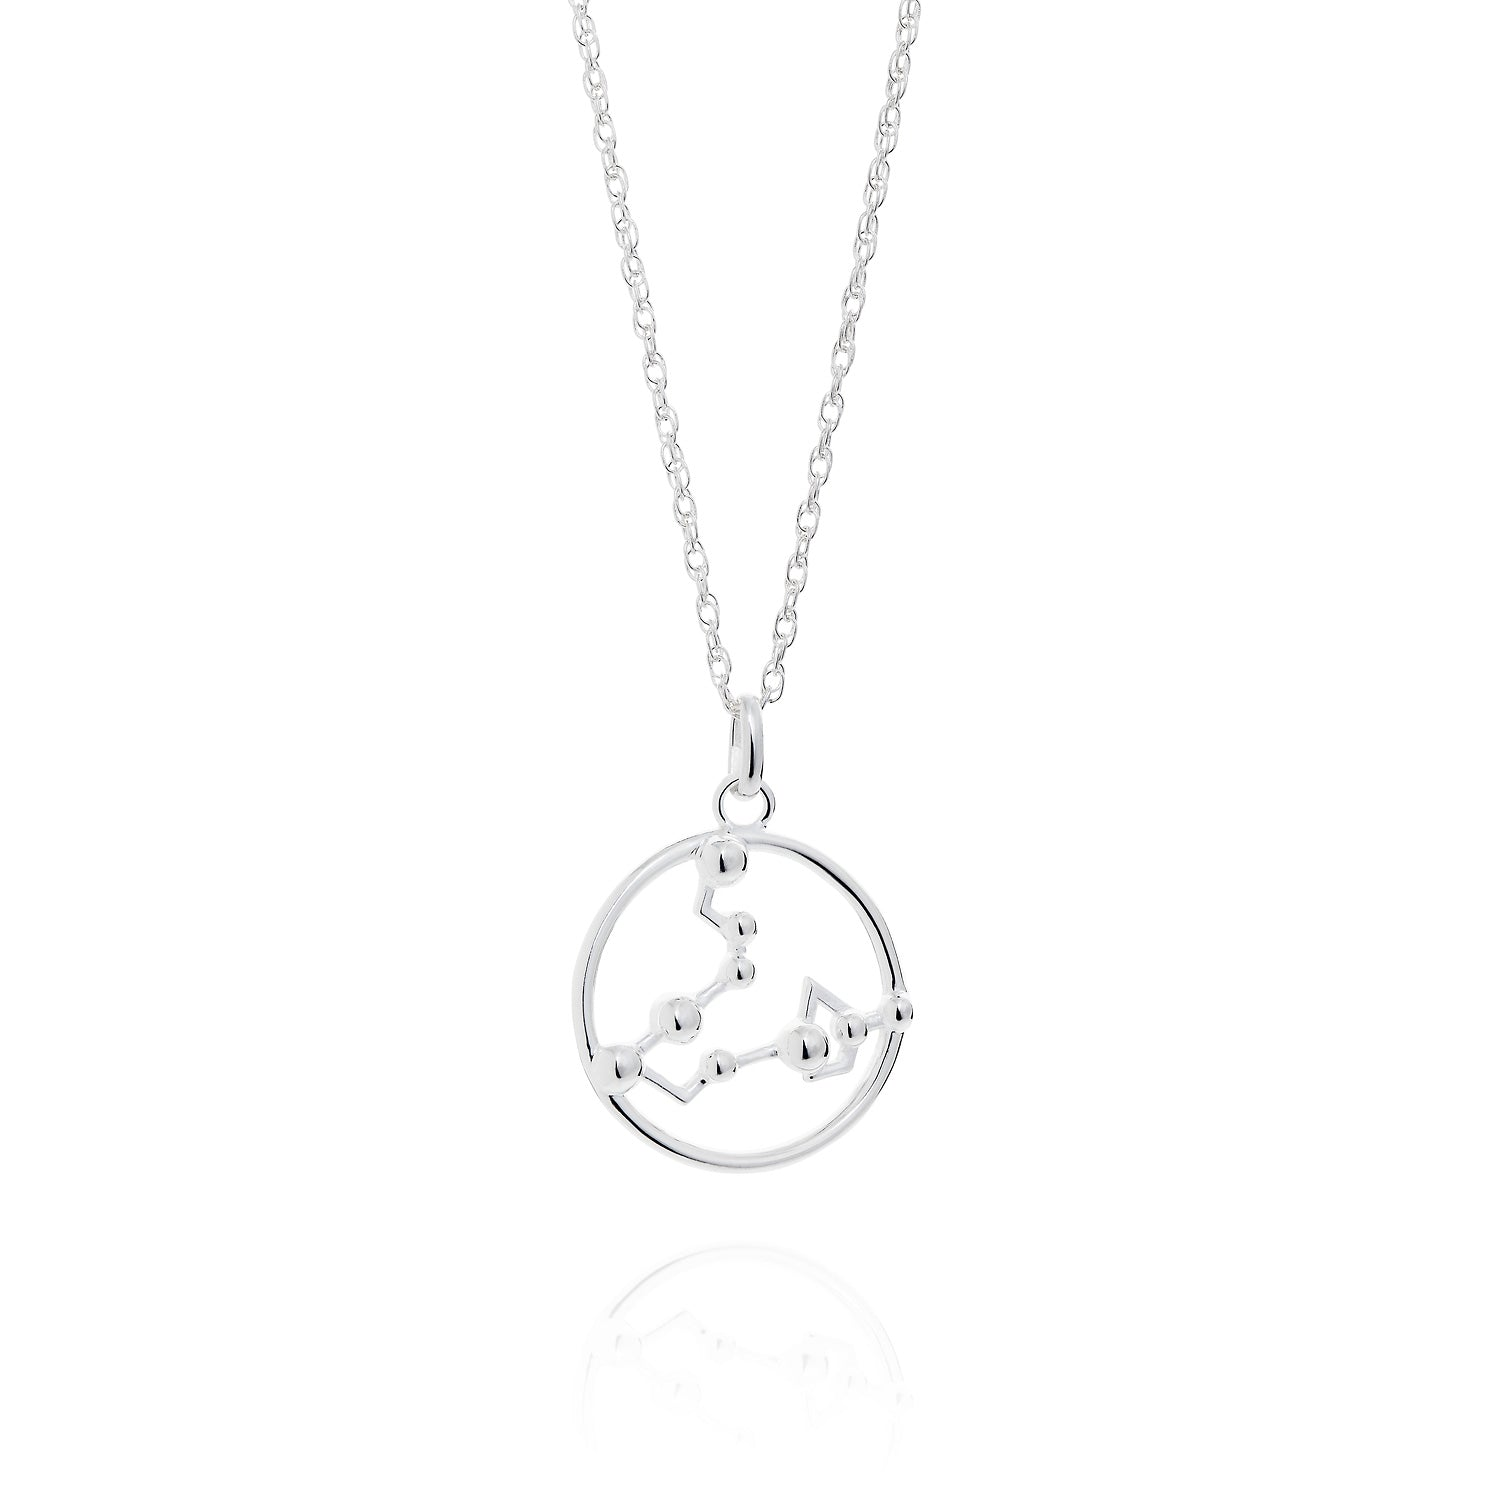 Pisces astrology star sign Necklace